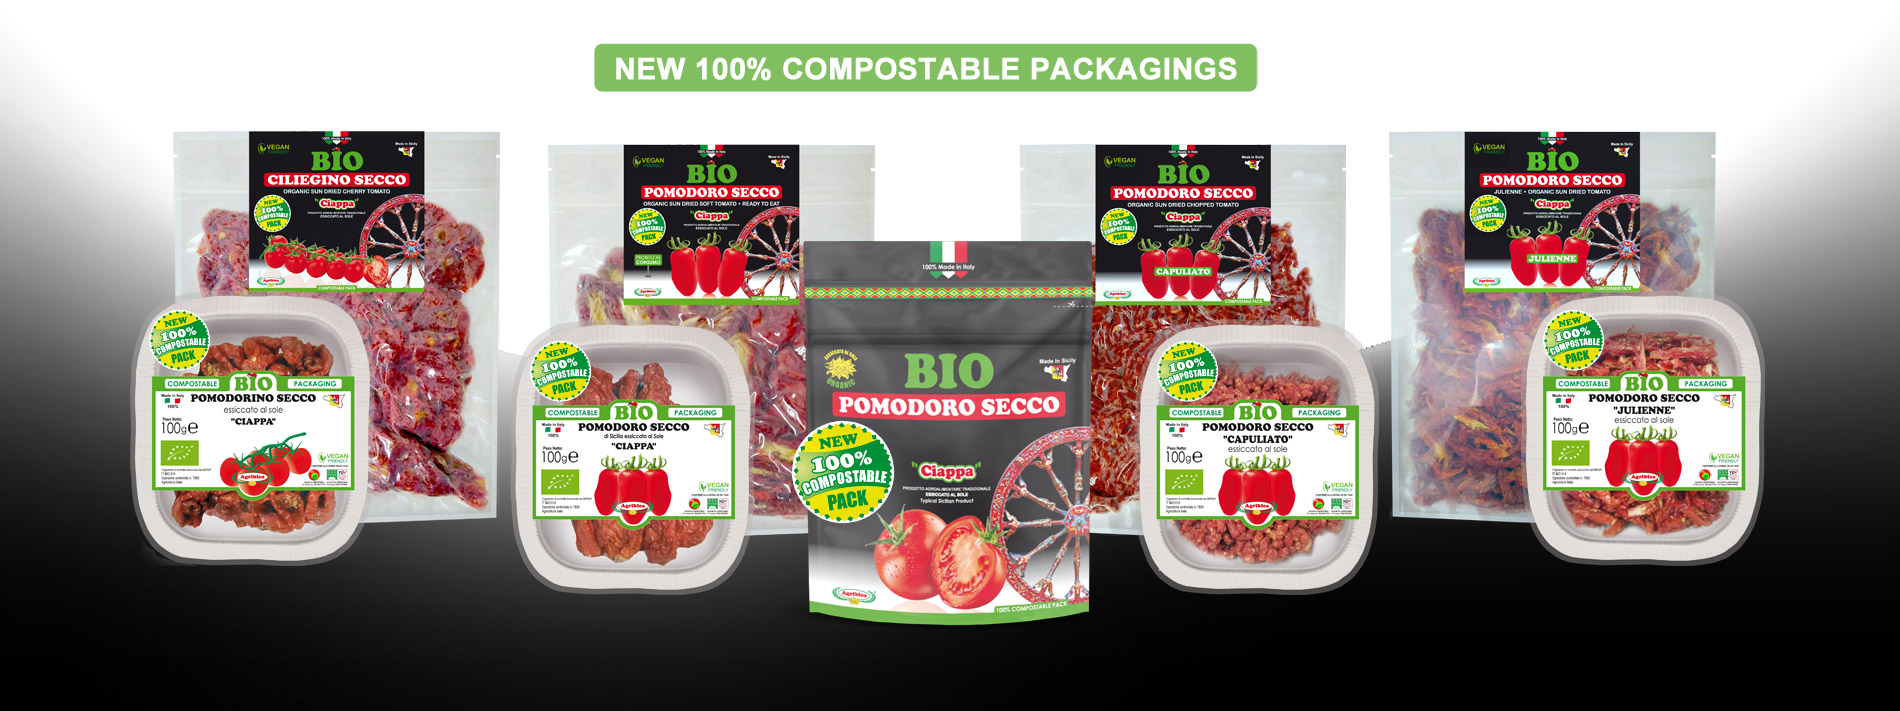 Organic Sun dried tomato - 100% Compostable Packagings Agriblea